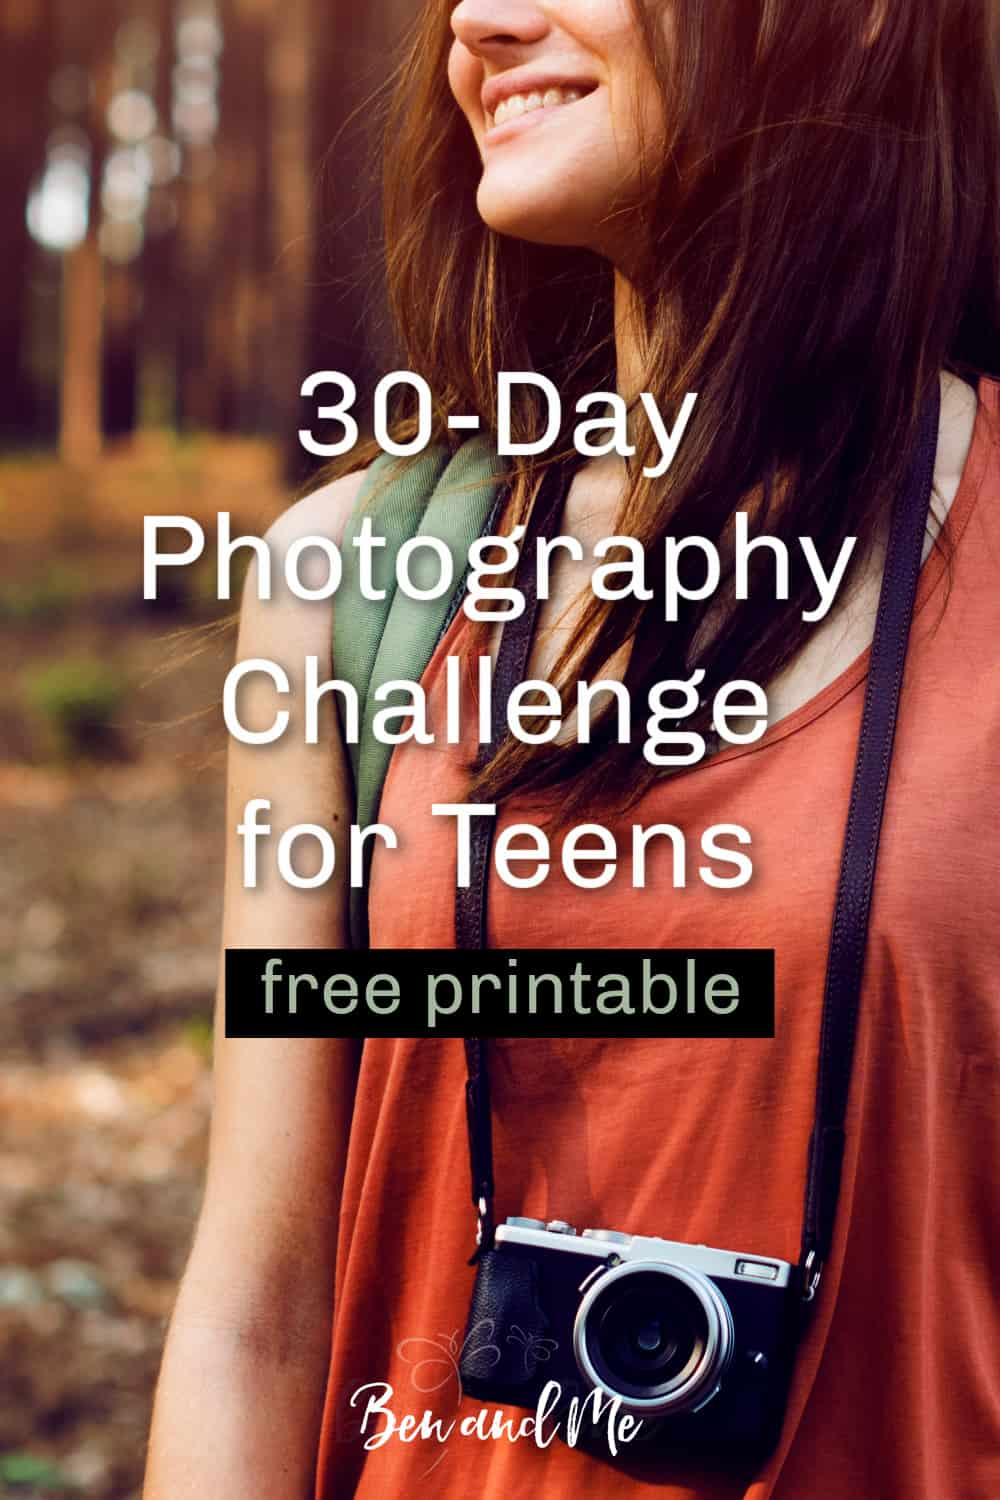 If your teenagers get bored in the summer months, this 30-day photography challenge for teens will help them improve a valuable skill. Includes a free printable to help them keep track! #homeschool #30daychallenge #photographychallengeforteens #homeschoolhighschool #summerlearning